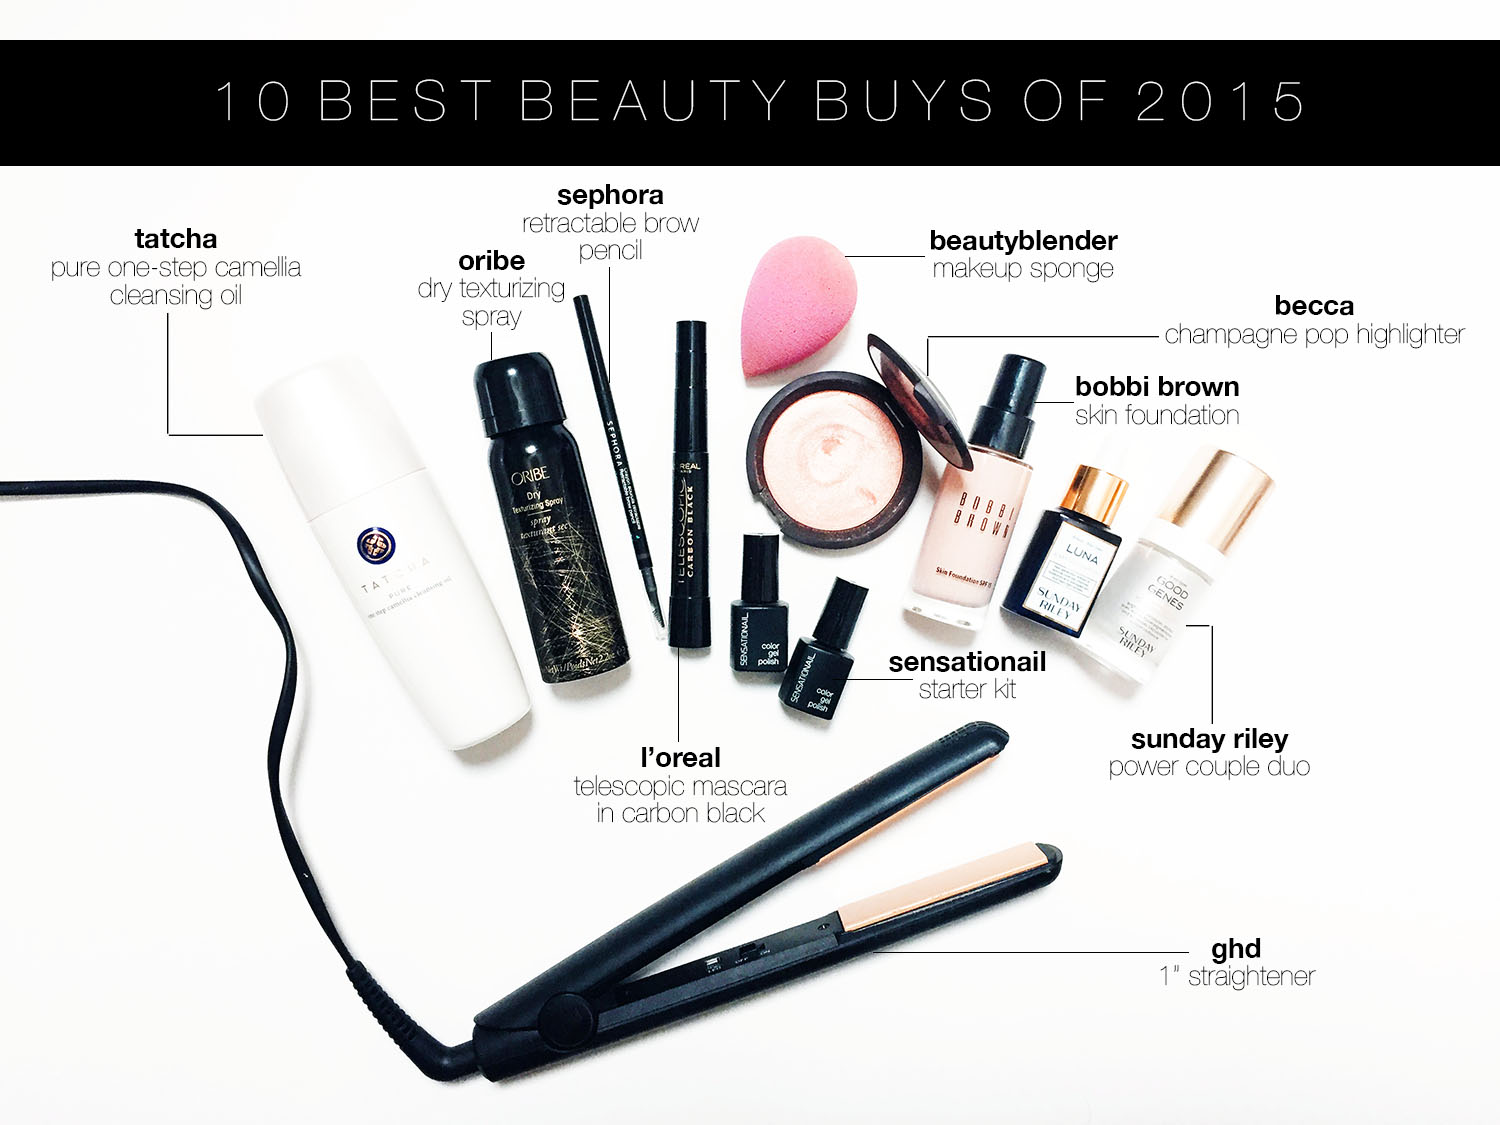 10-best-beauty-buys-2015